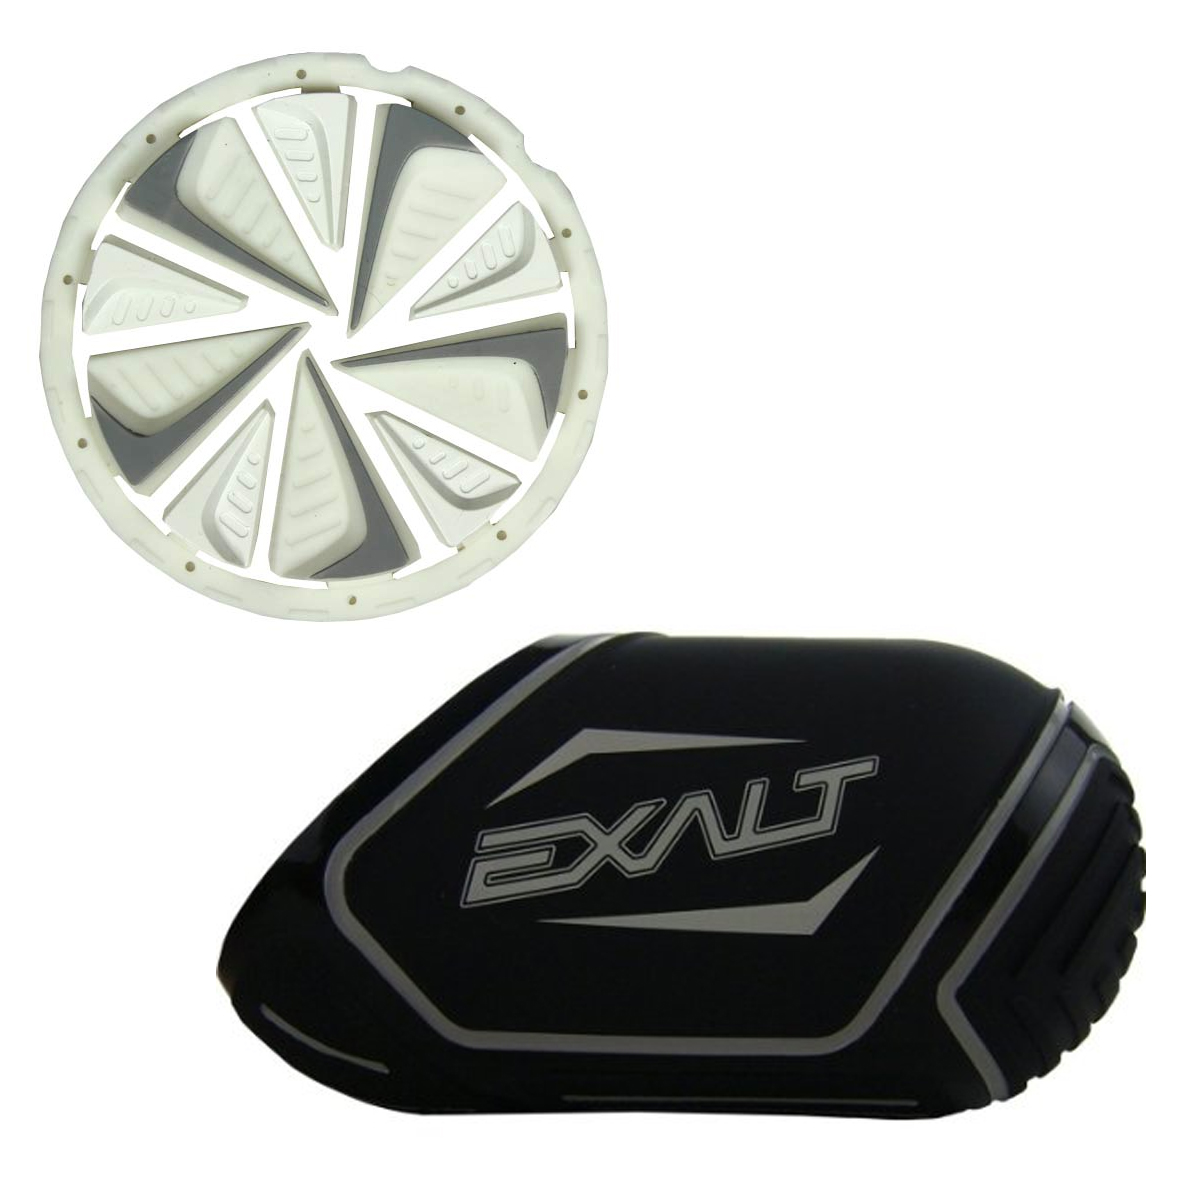 Exalt Paintball Rotor FastFeed Loader FeedGate White + Exalt Tank Cover by